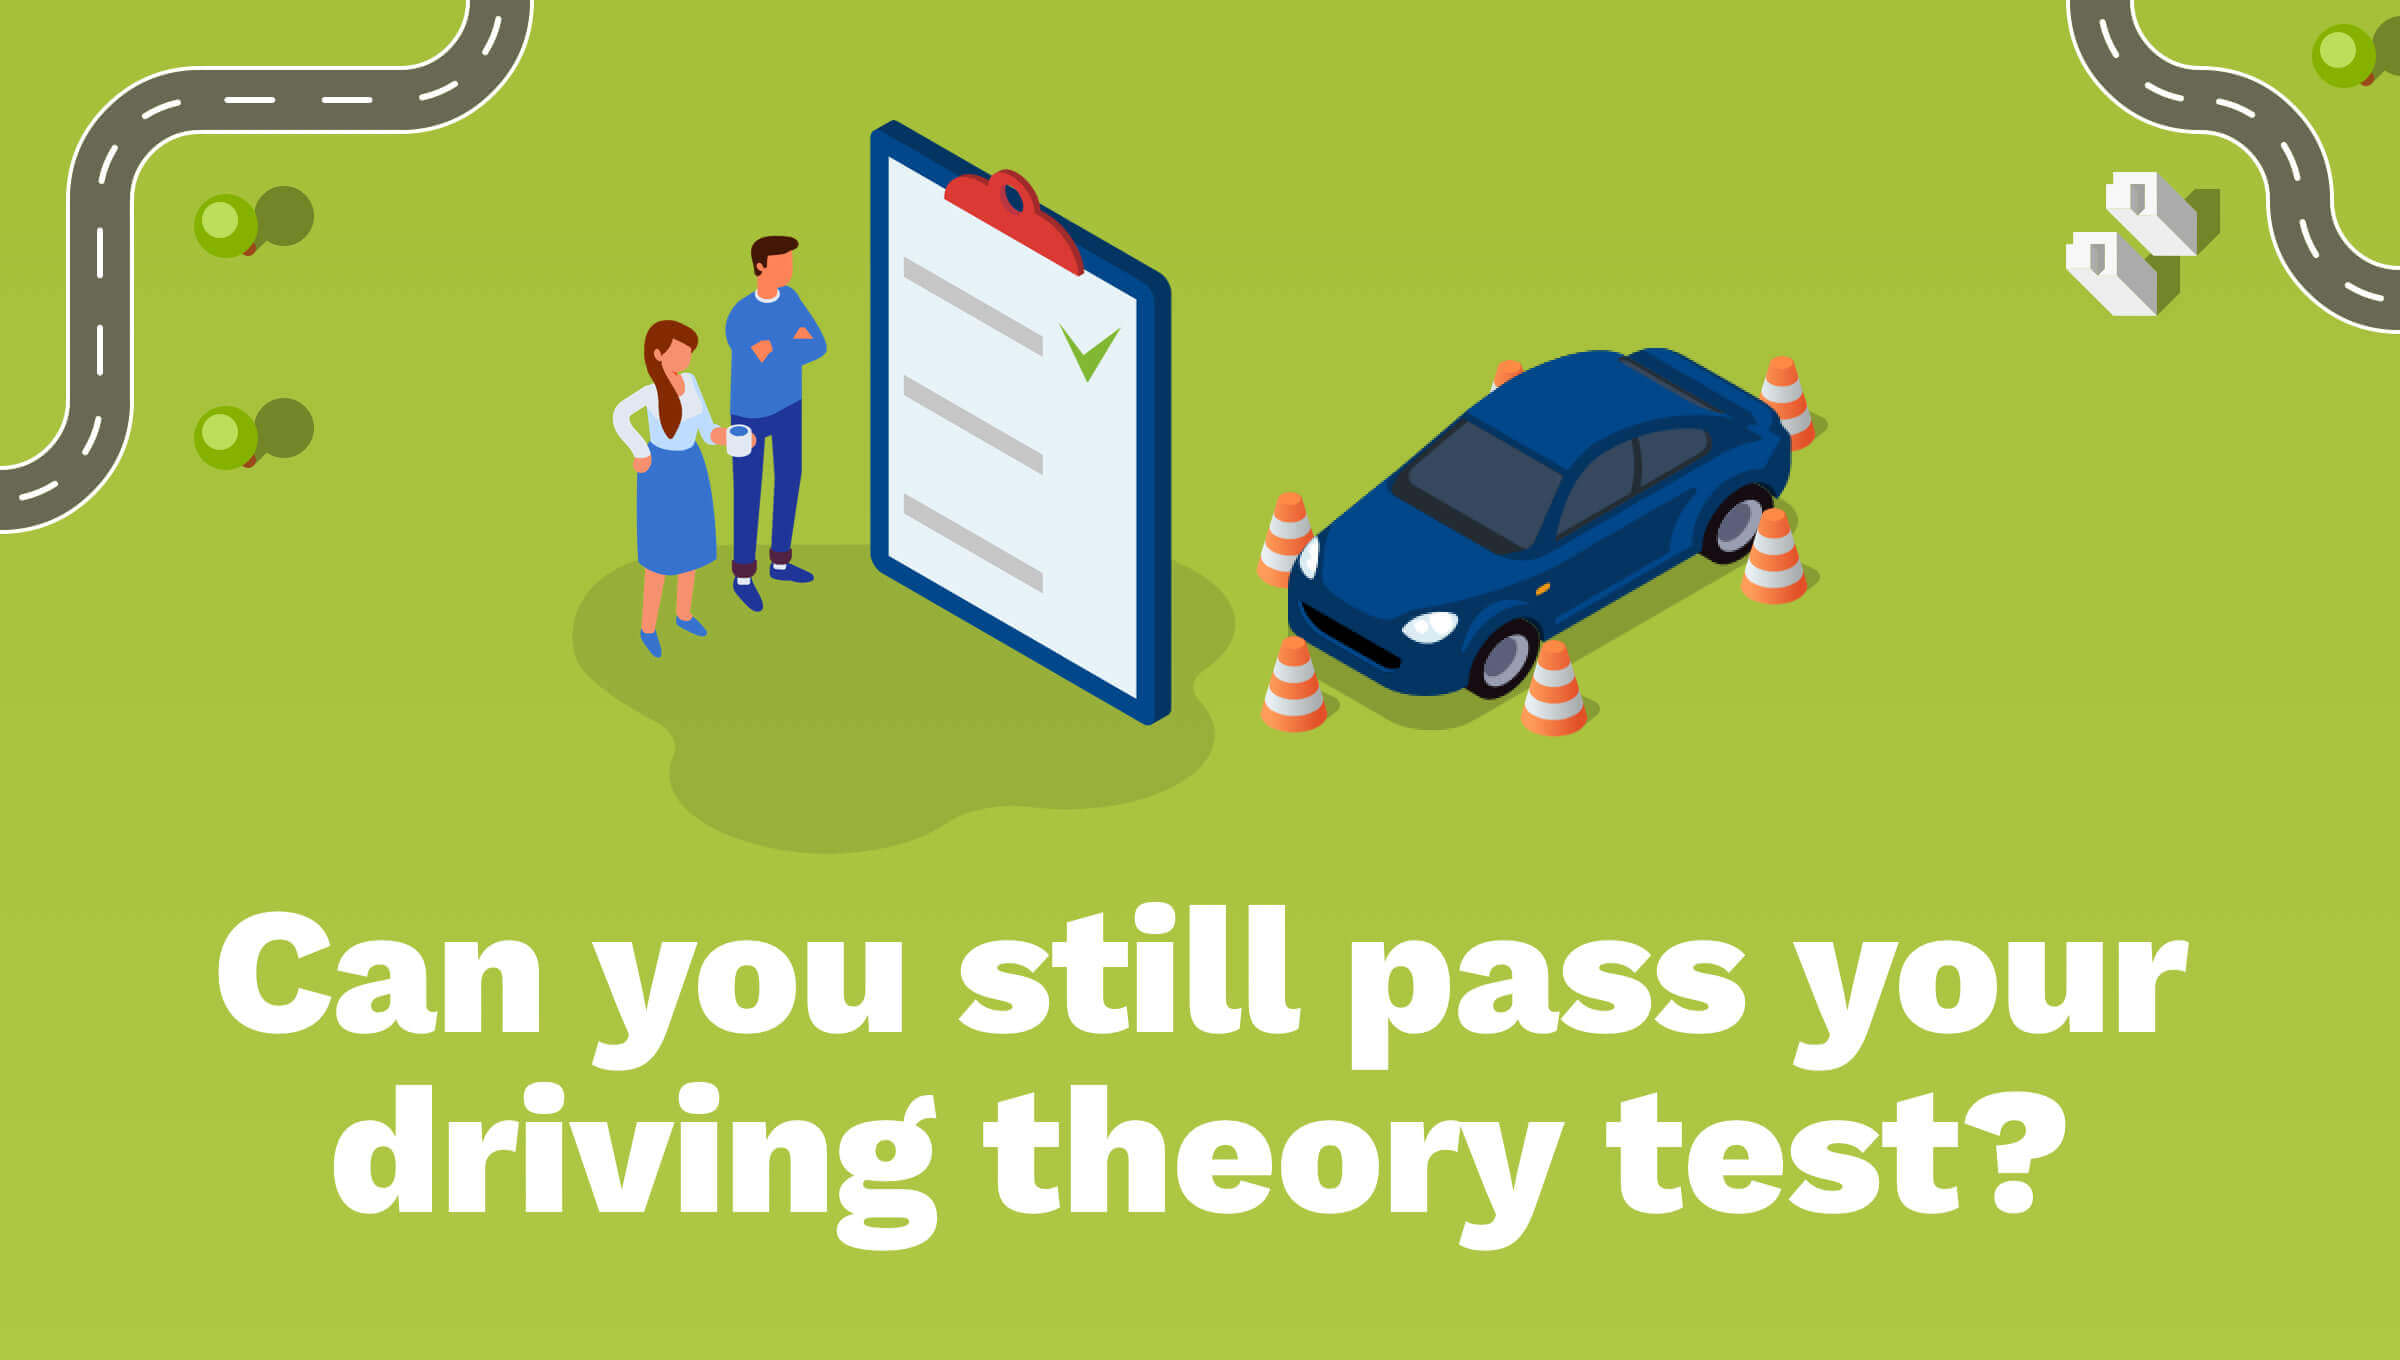 Could You Still Pass Your Driving Theory Test?